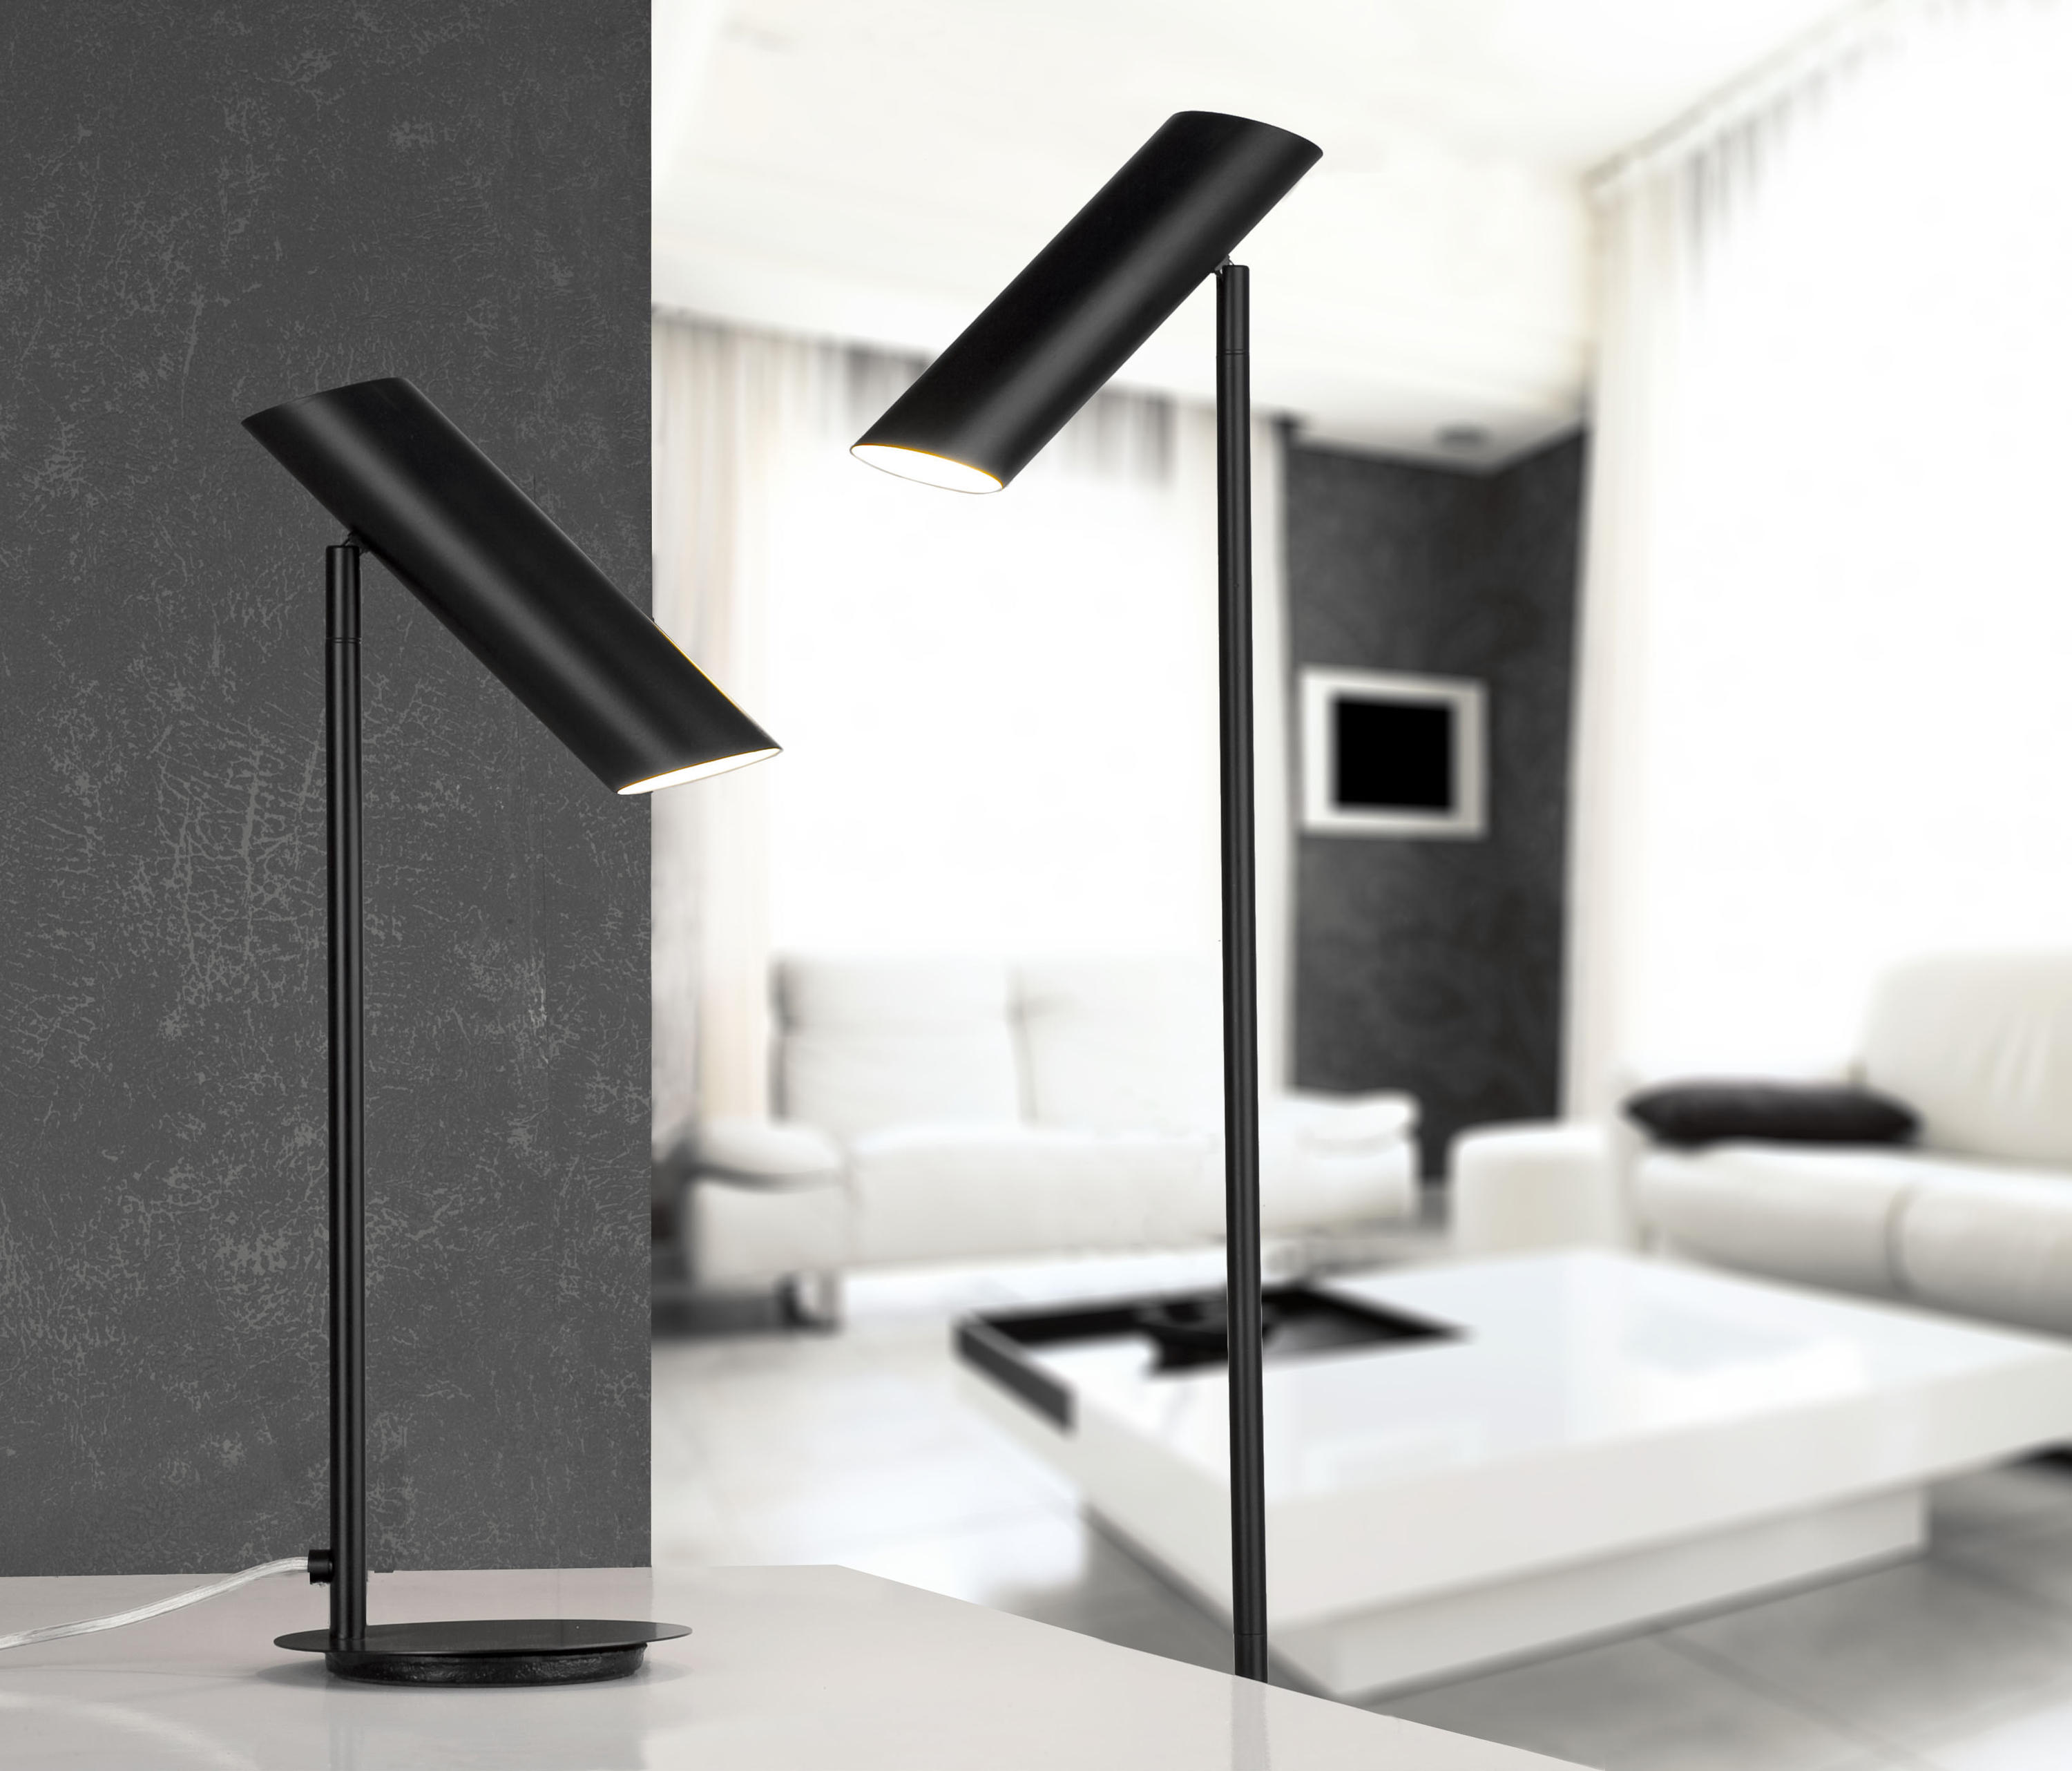 ... Link table l& by Faro ... & LINK TABLE LAMP - General lighting from Faro   Architonic azcodes.com